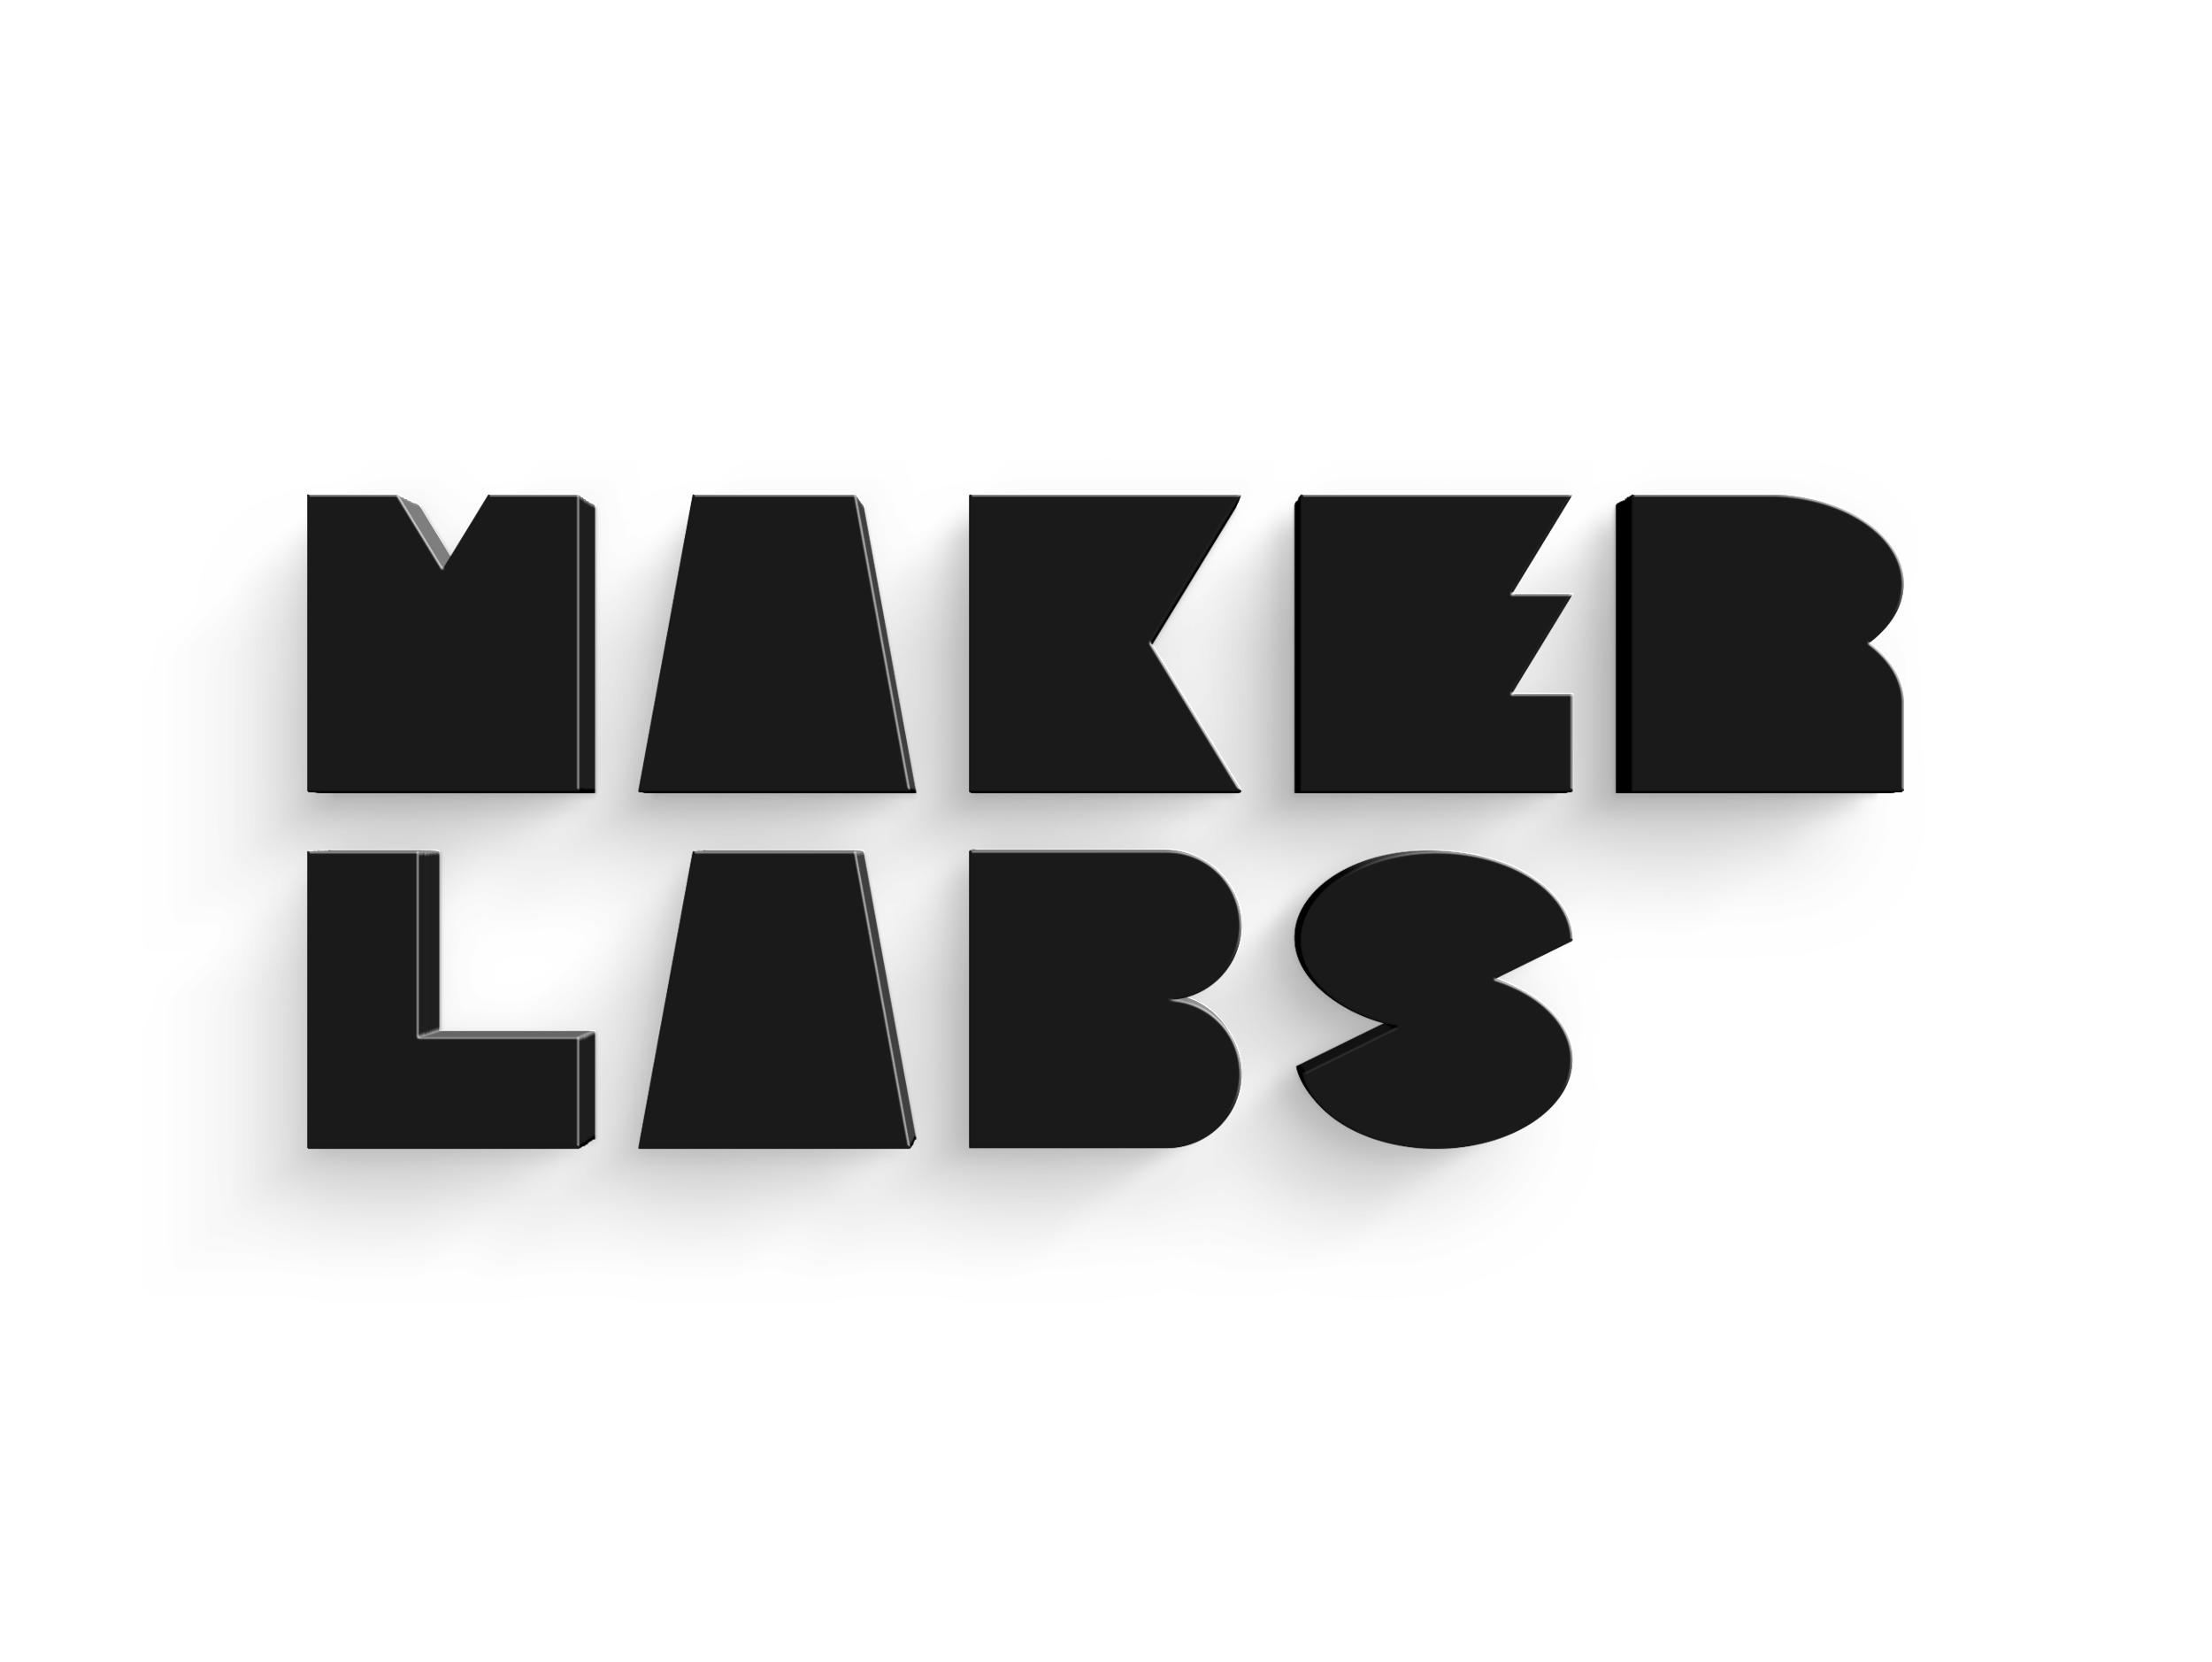 MakerLabs_Hero_Black.png